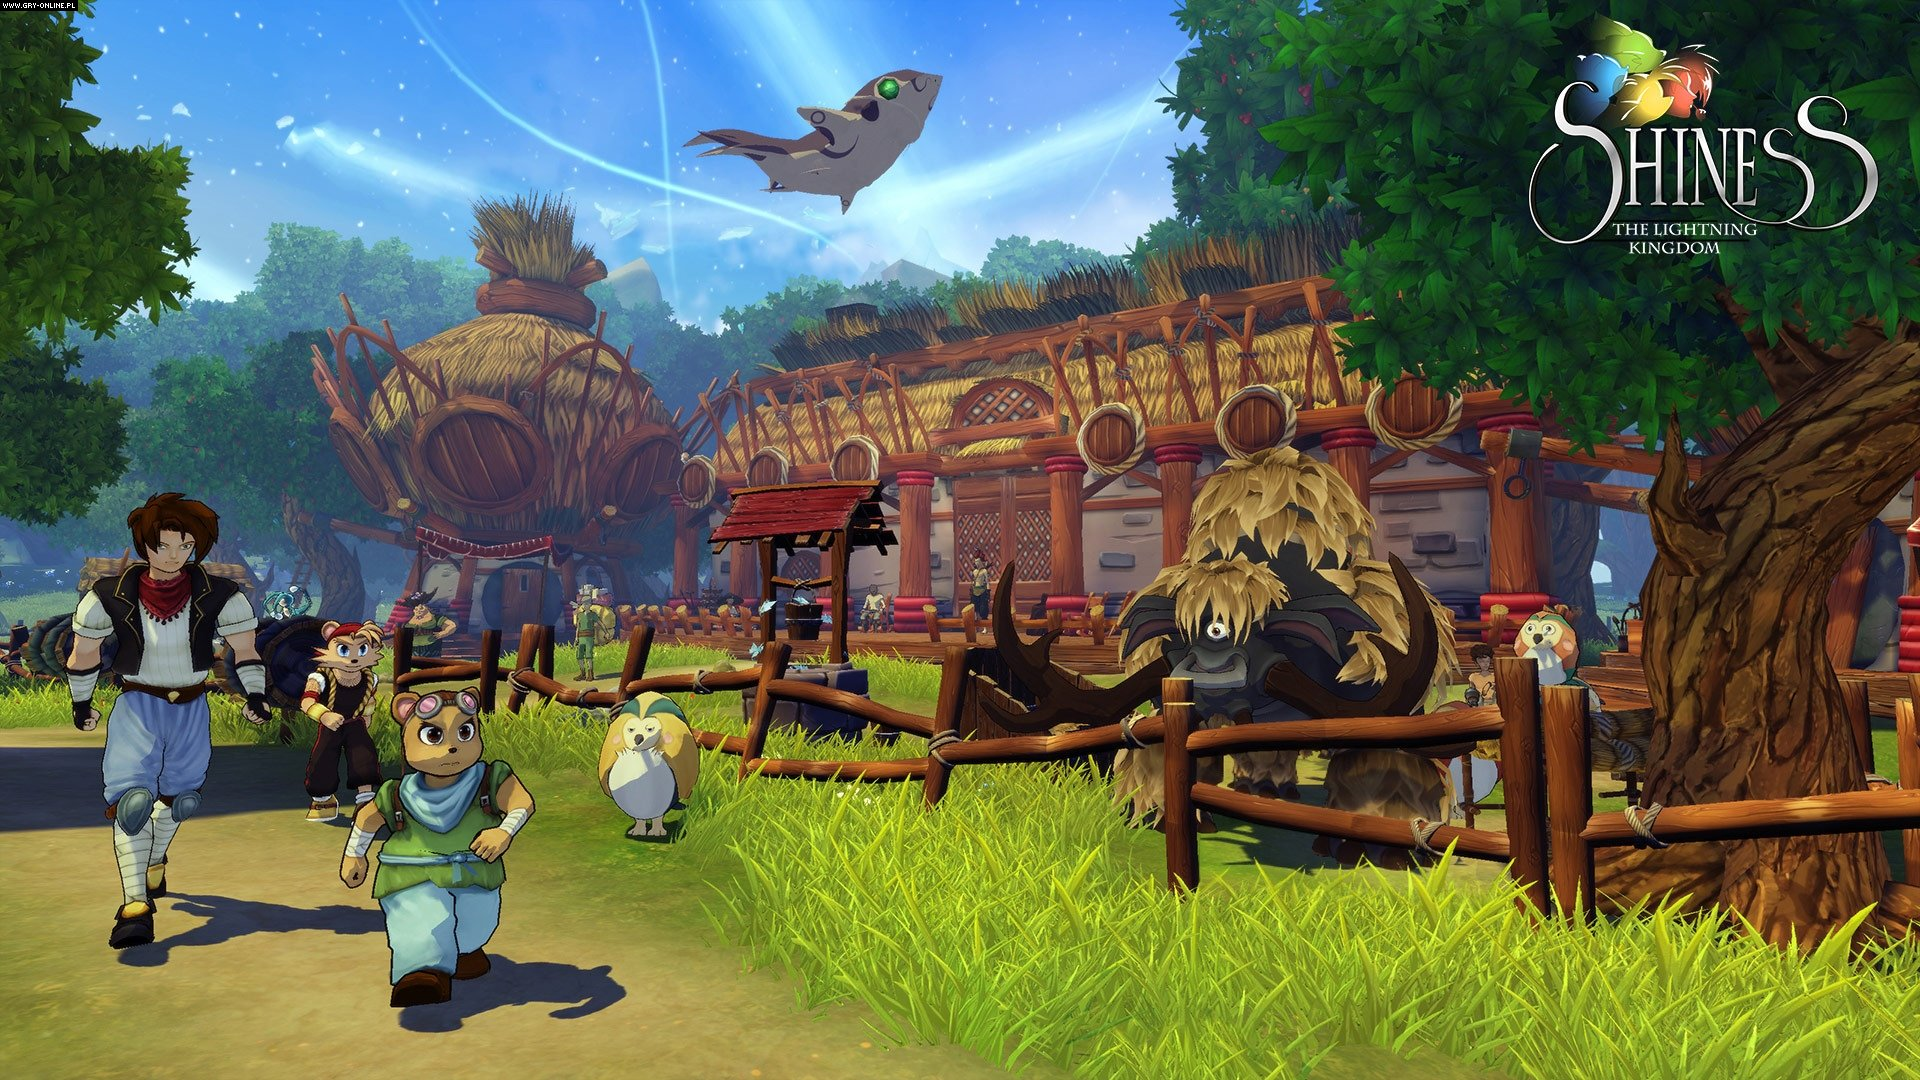 Shiness: The Lightning Kingdom XONE, PS4, PC, WiiU Games Image 5/12, Enigami, Focus Home Interactive